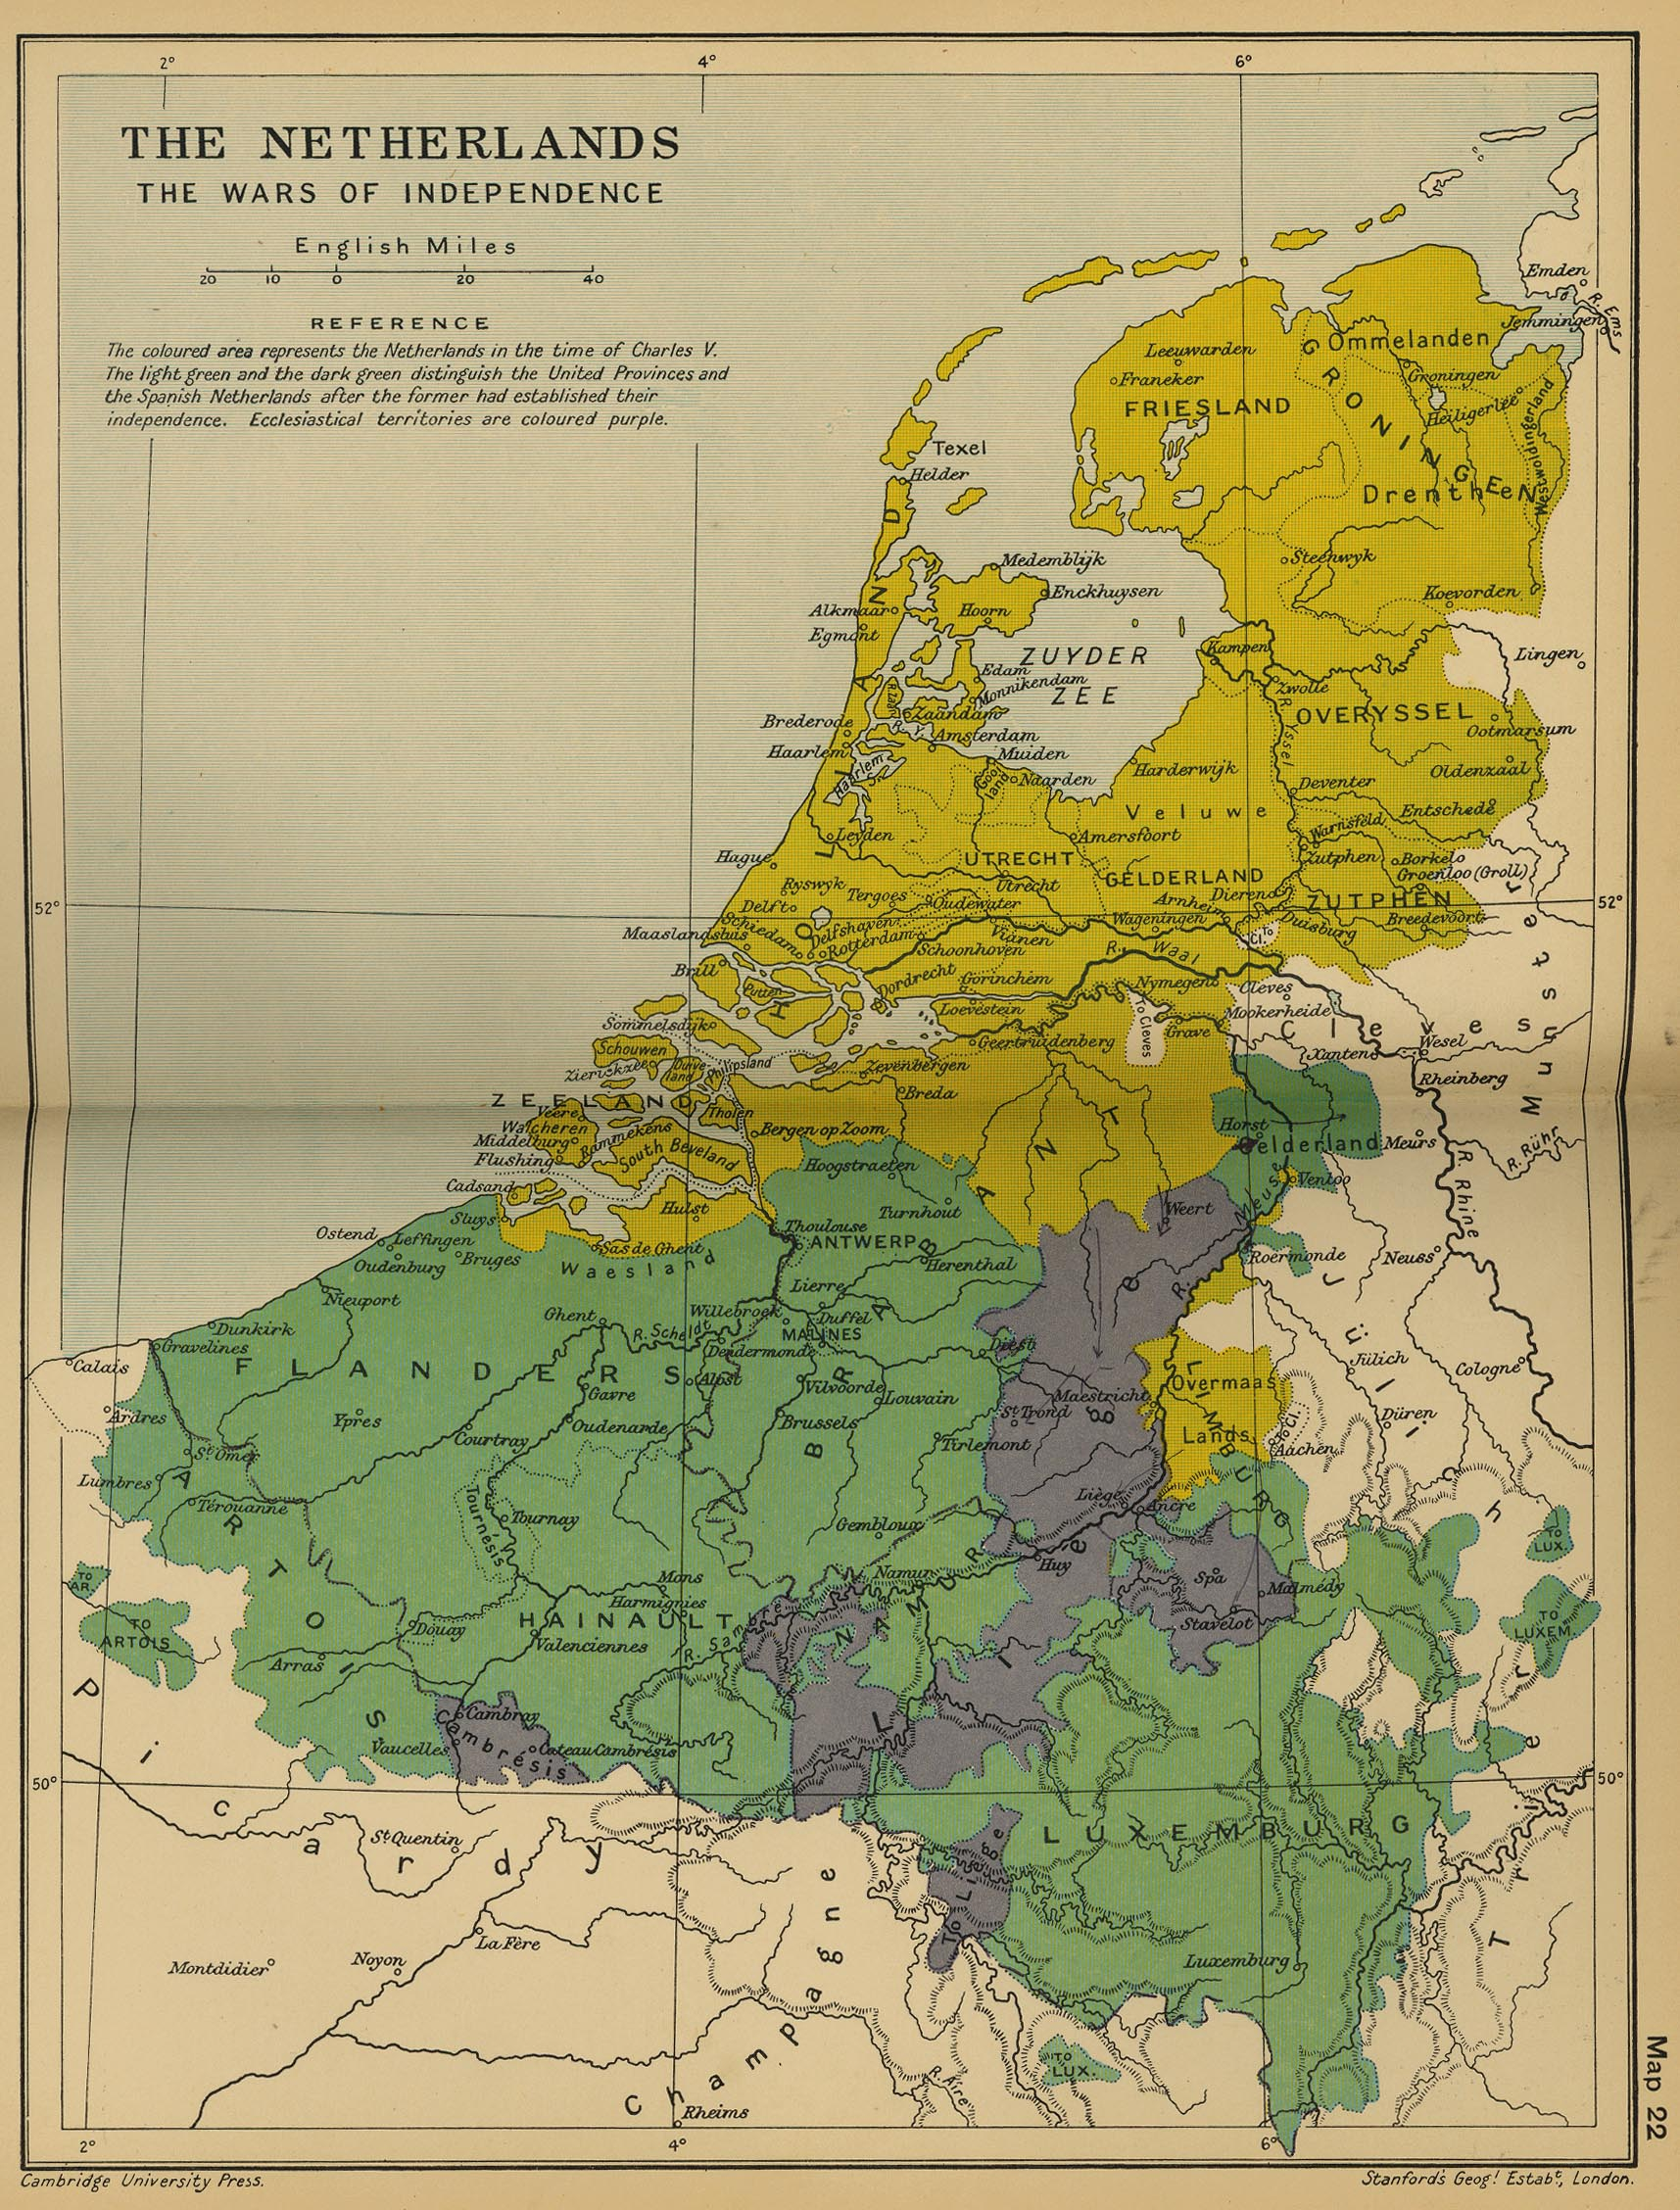 Map of the Netherlands: The Wars of Independence